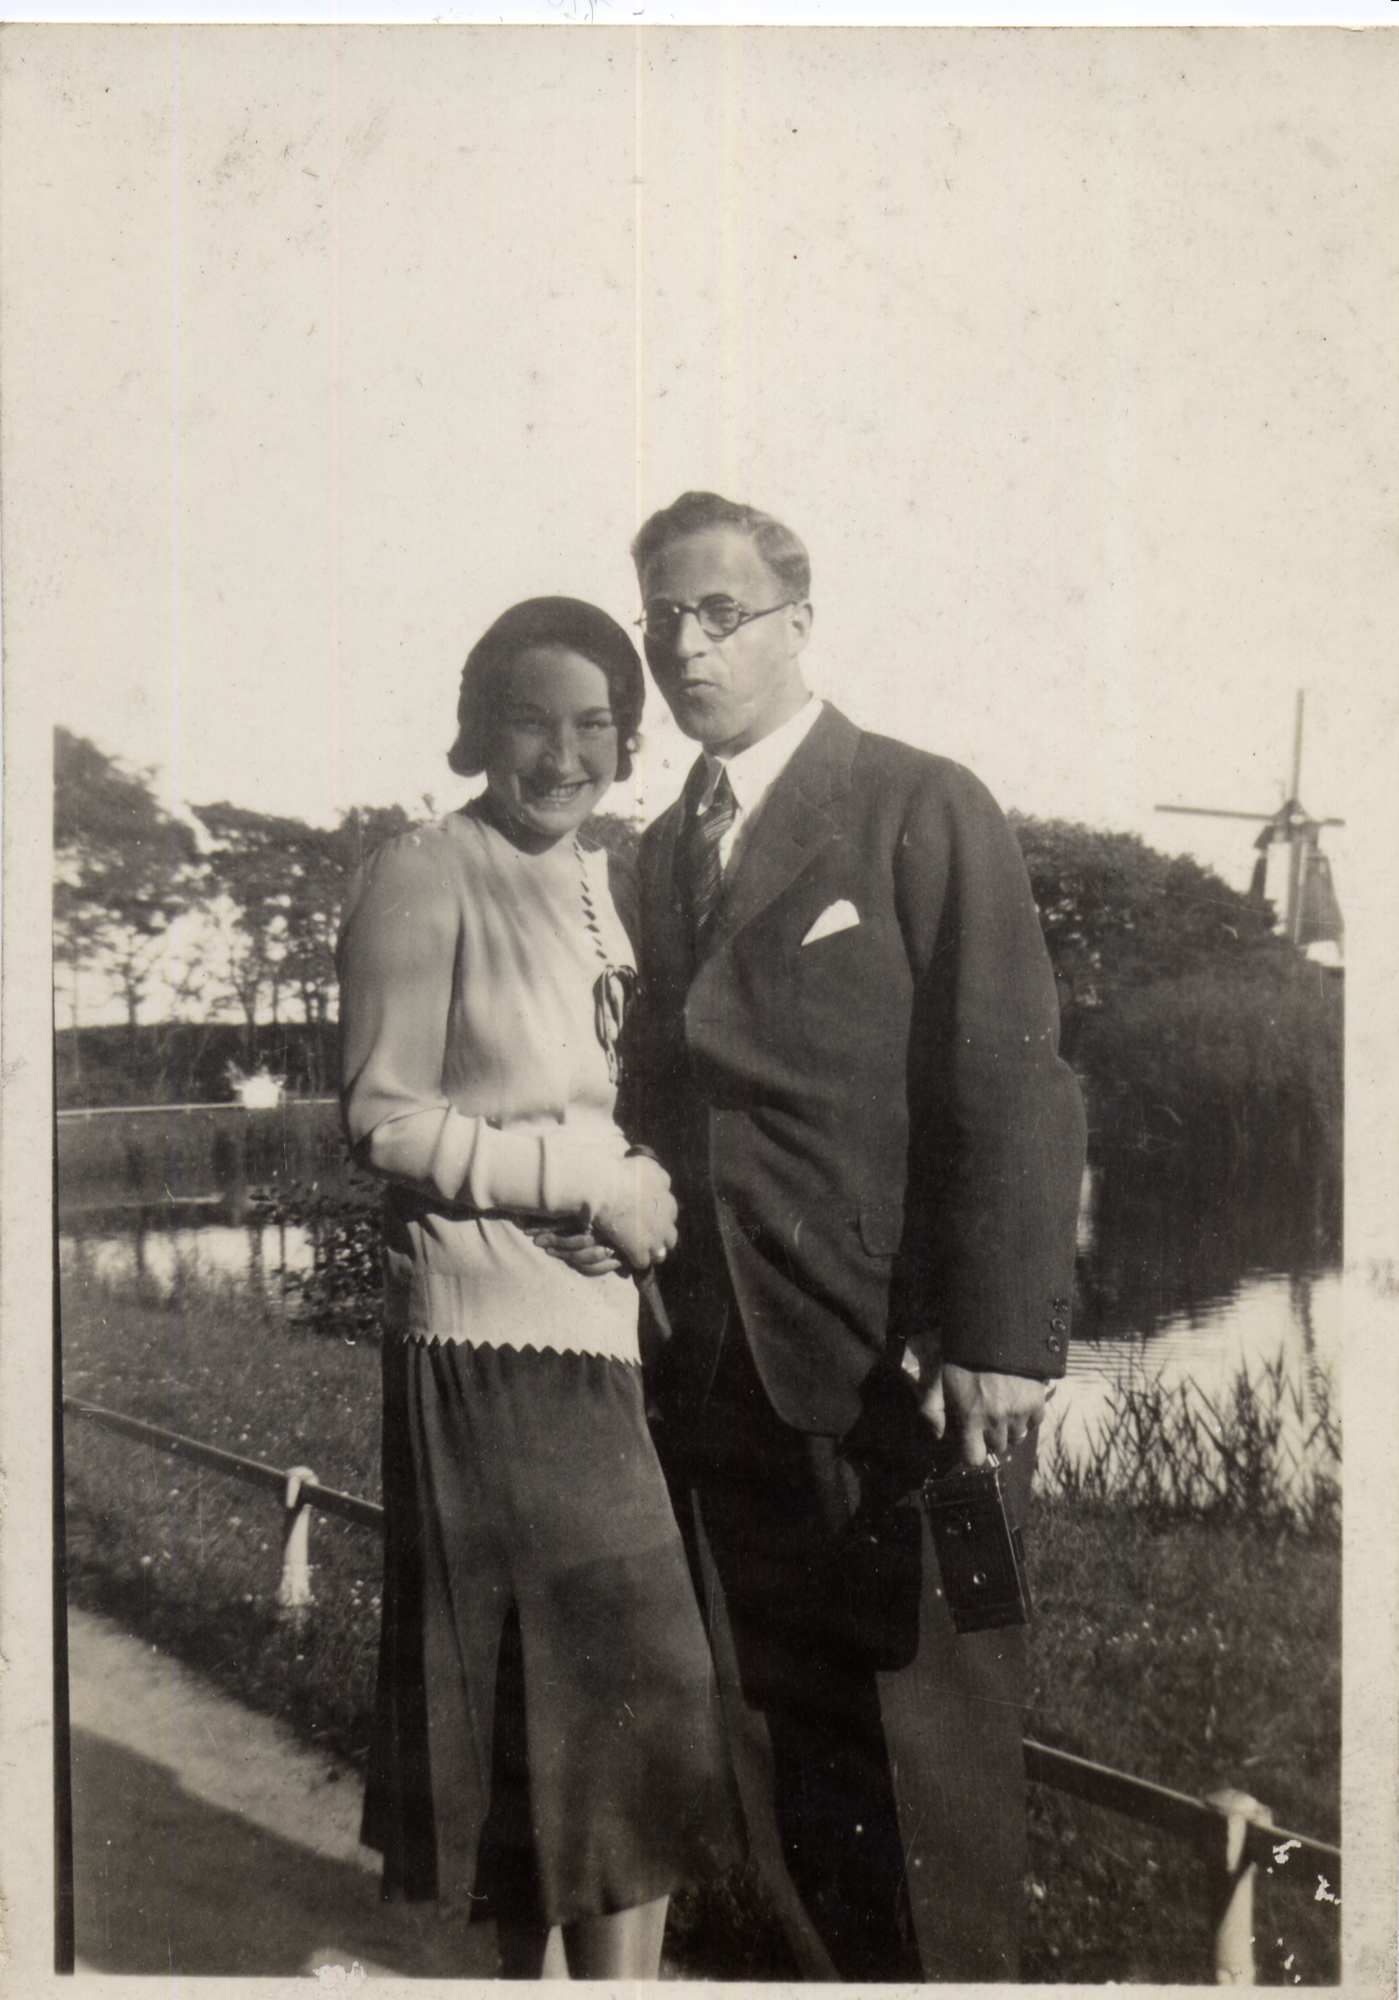 Hugo-and-Gerda-Windmueller-1930